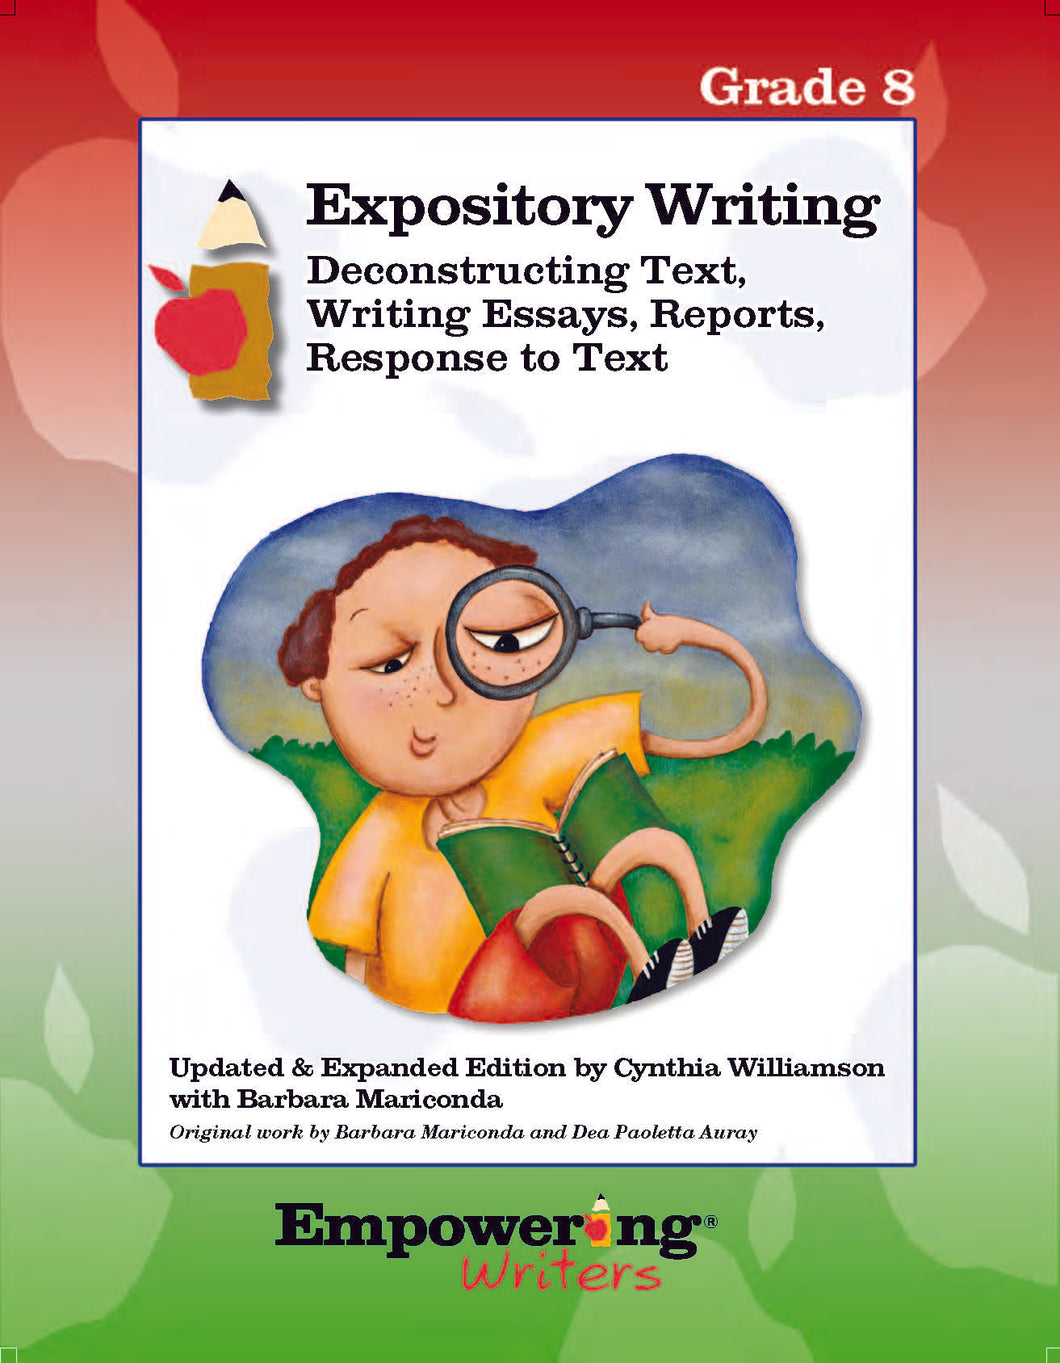 Grade 8 Informational/Expository Writing Guide (printed)